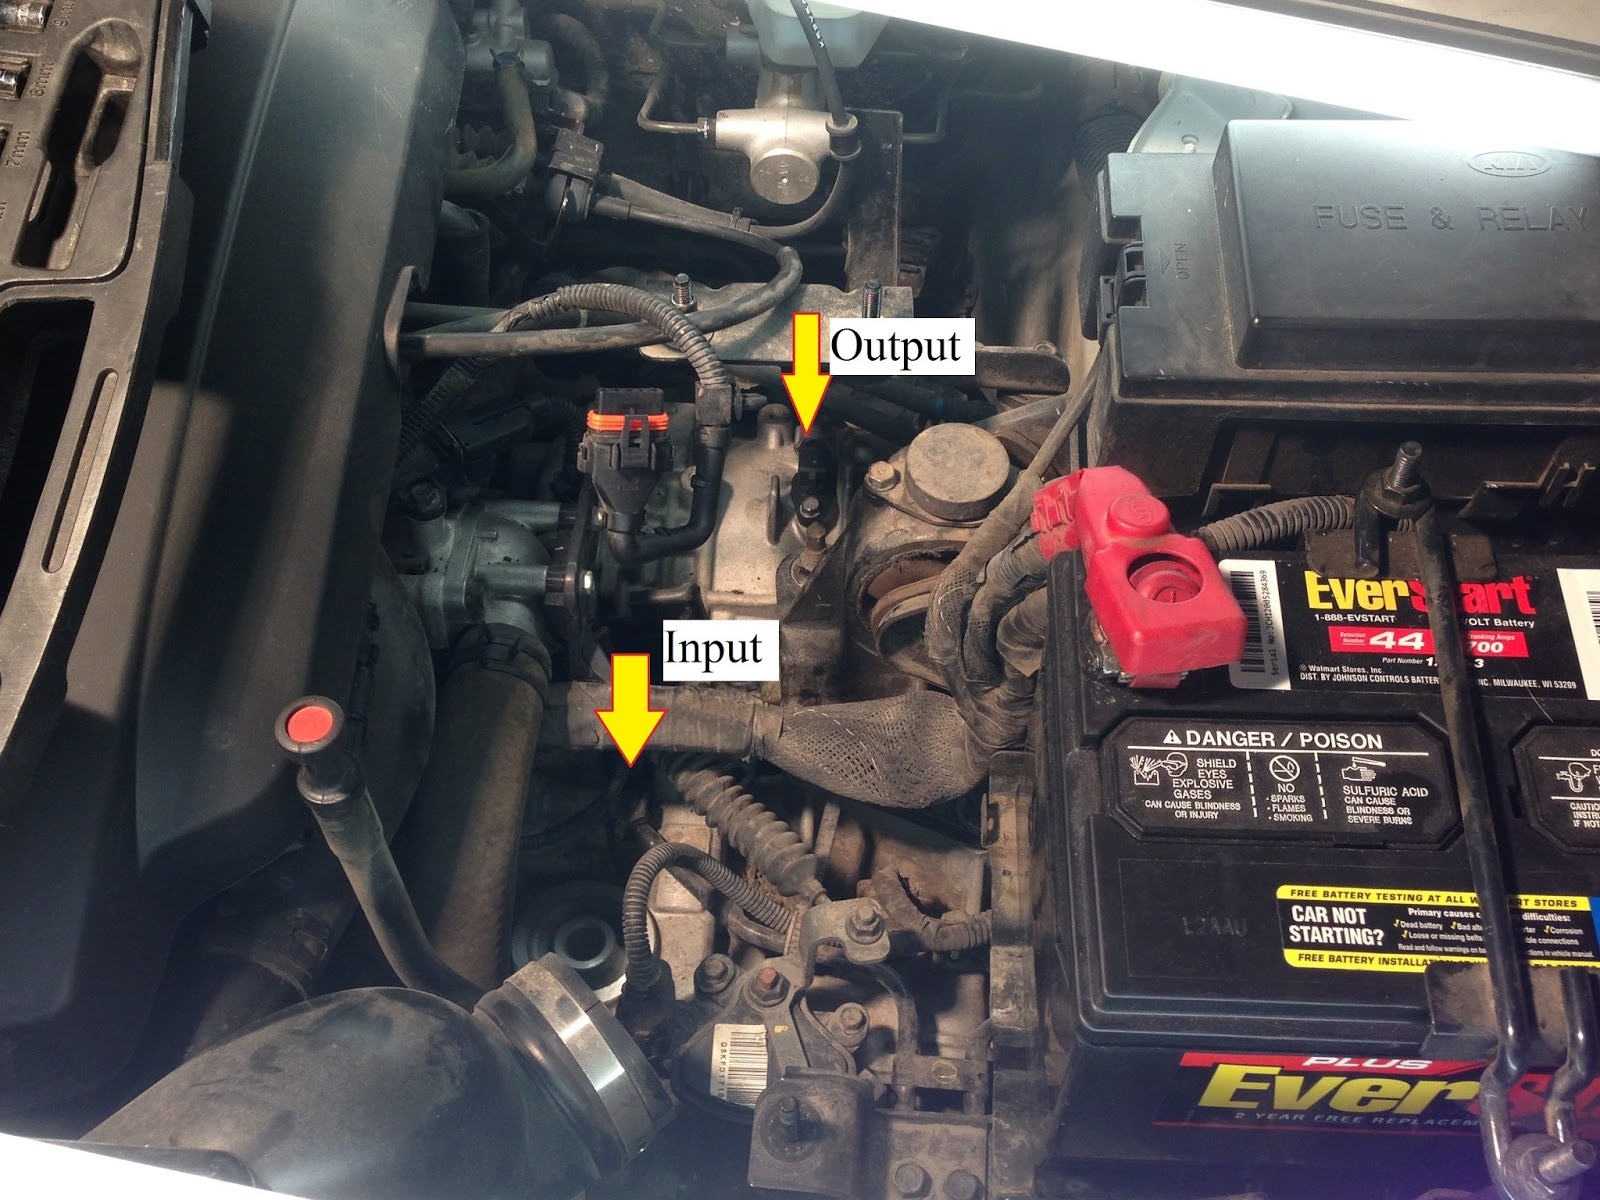 hight resolution of 6 before taking out the sensor i would make the suggestion to clean out the part of your engine compartment where the sensors are